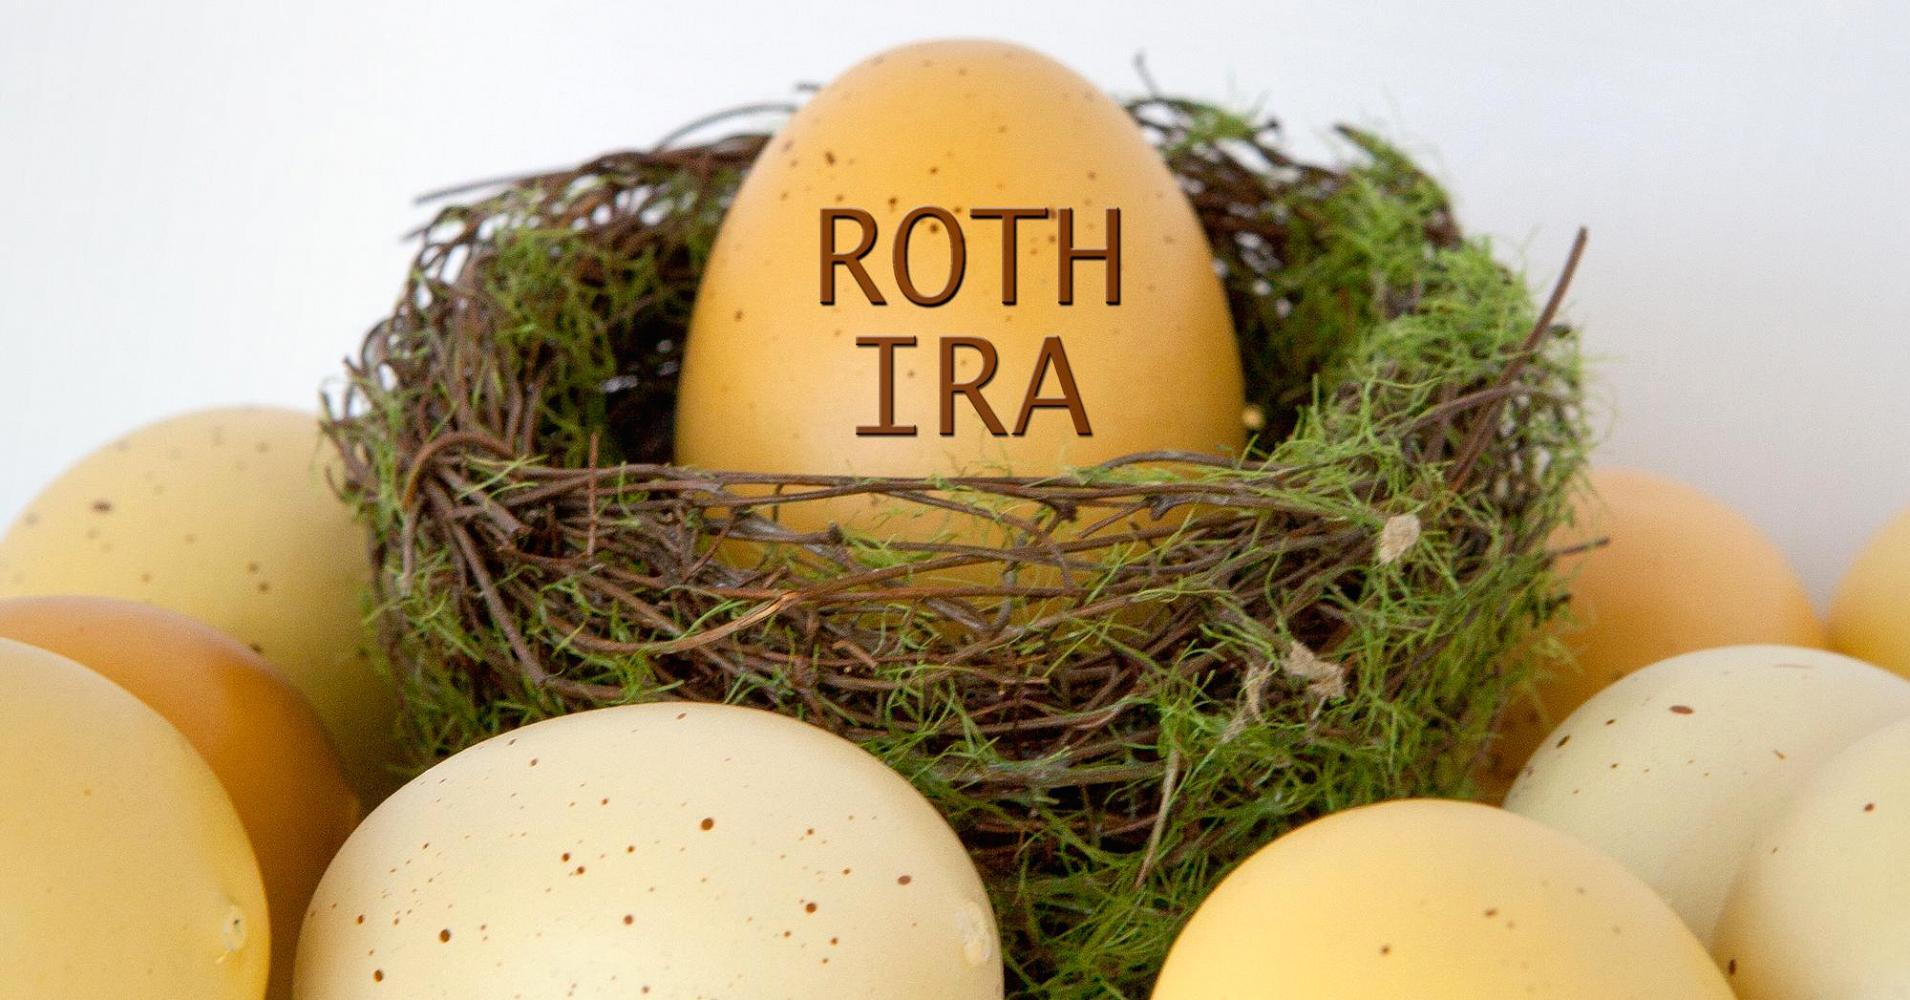 Roth IRA: To convert or not? It's complicated